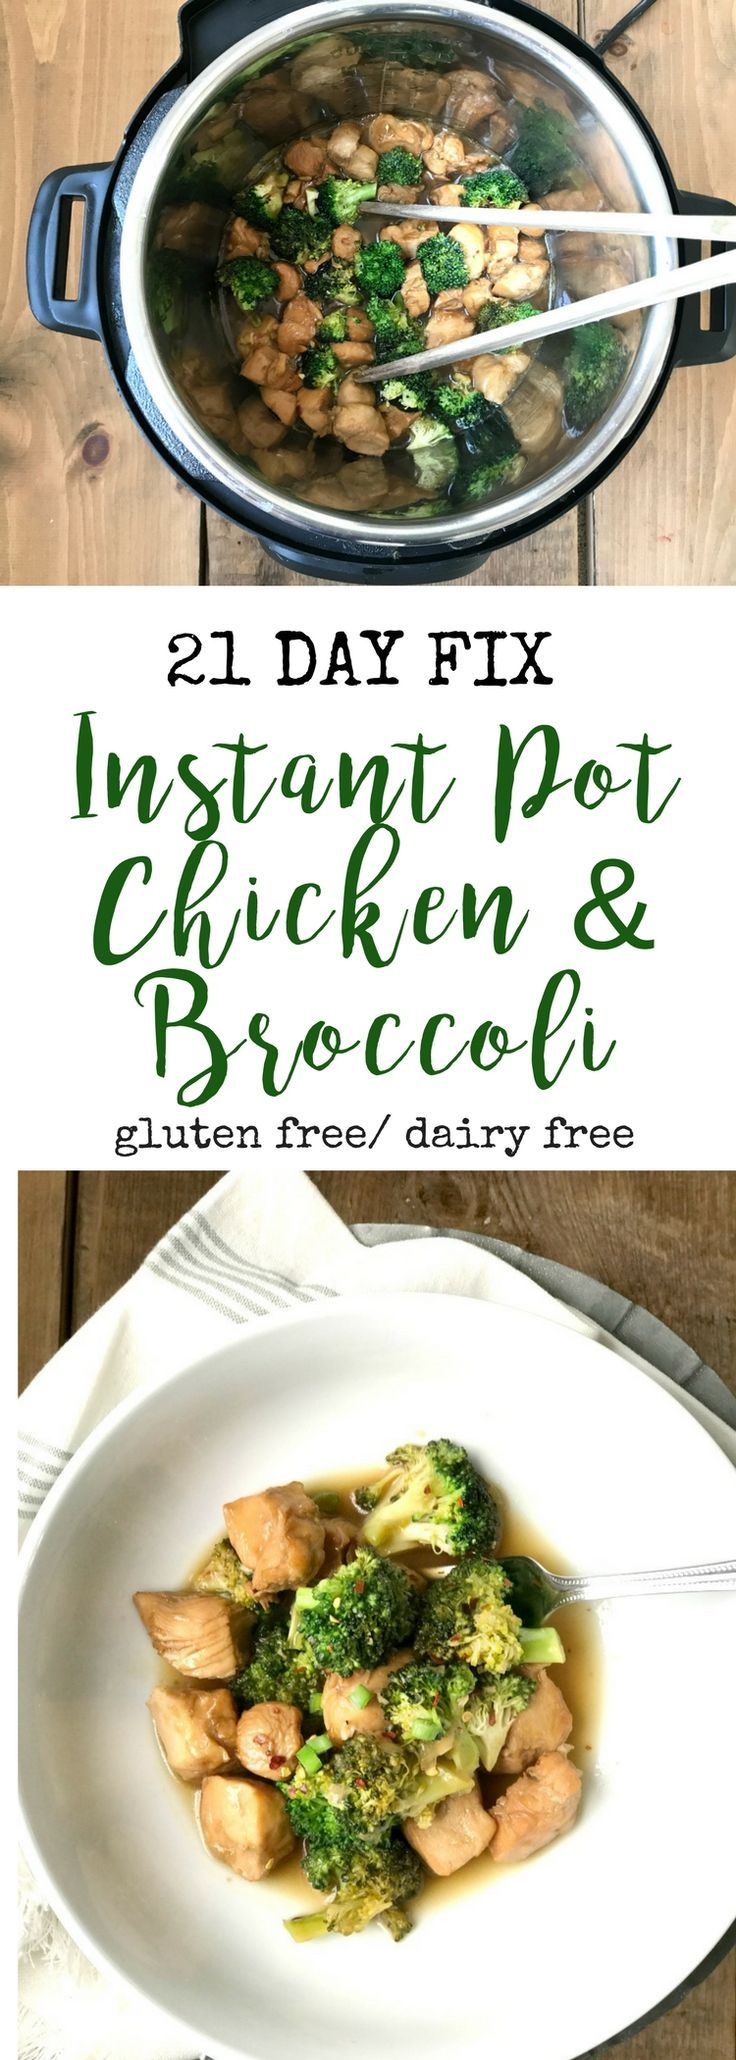 Instant Pot Chicken and Broccoli | Confessions of a Fit Foodie